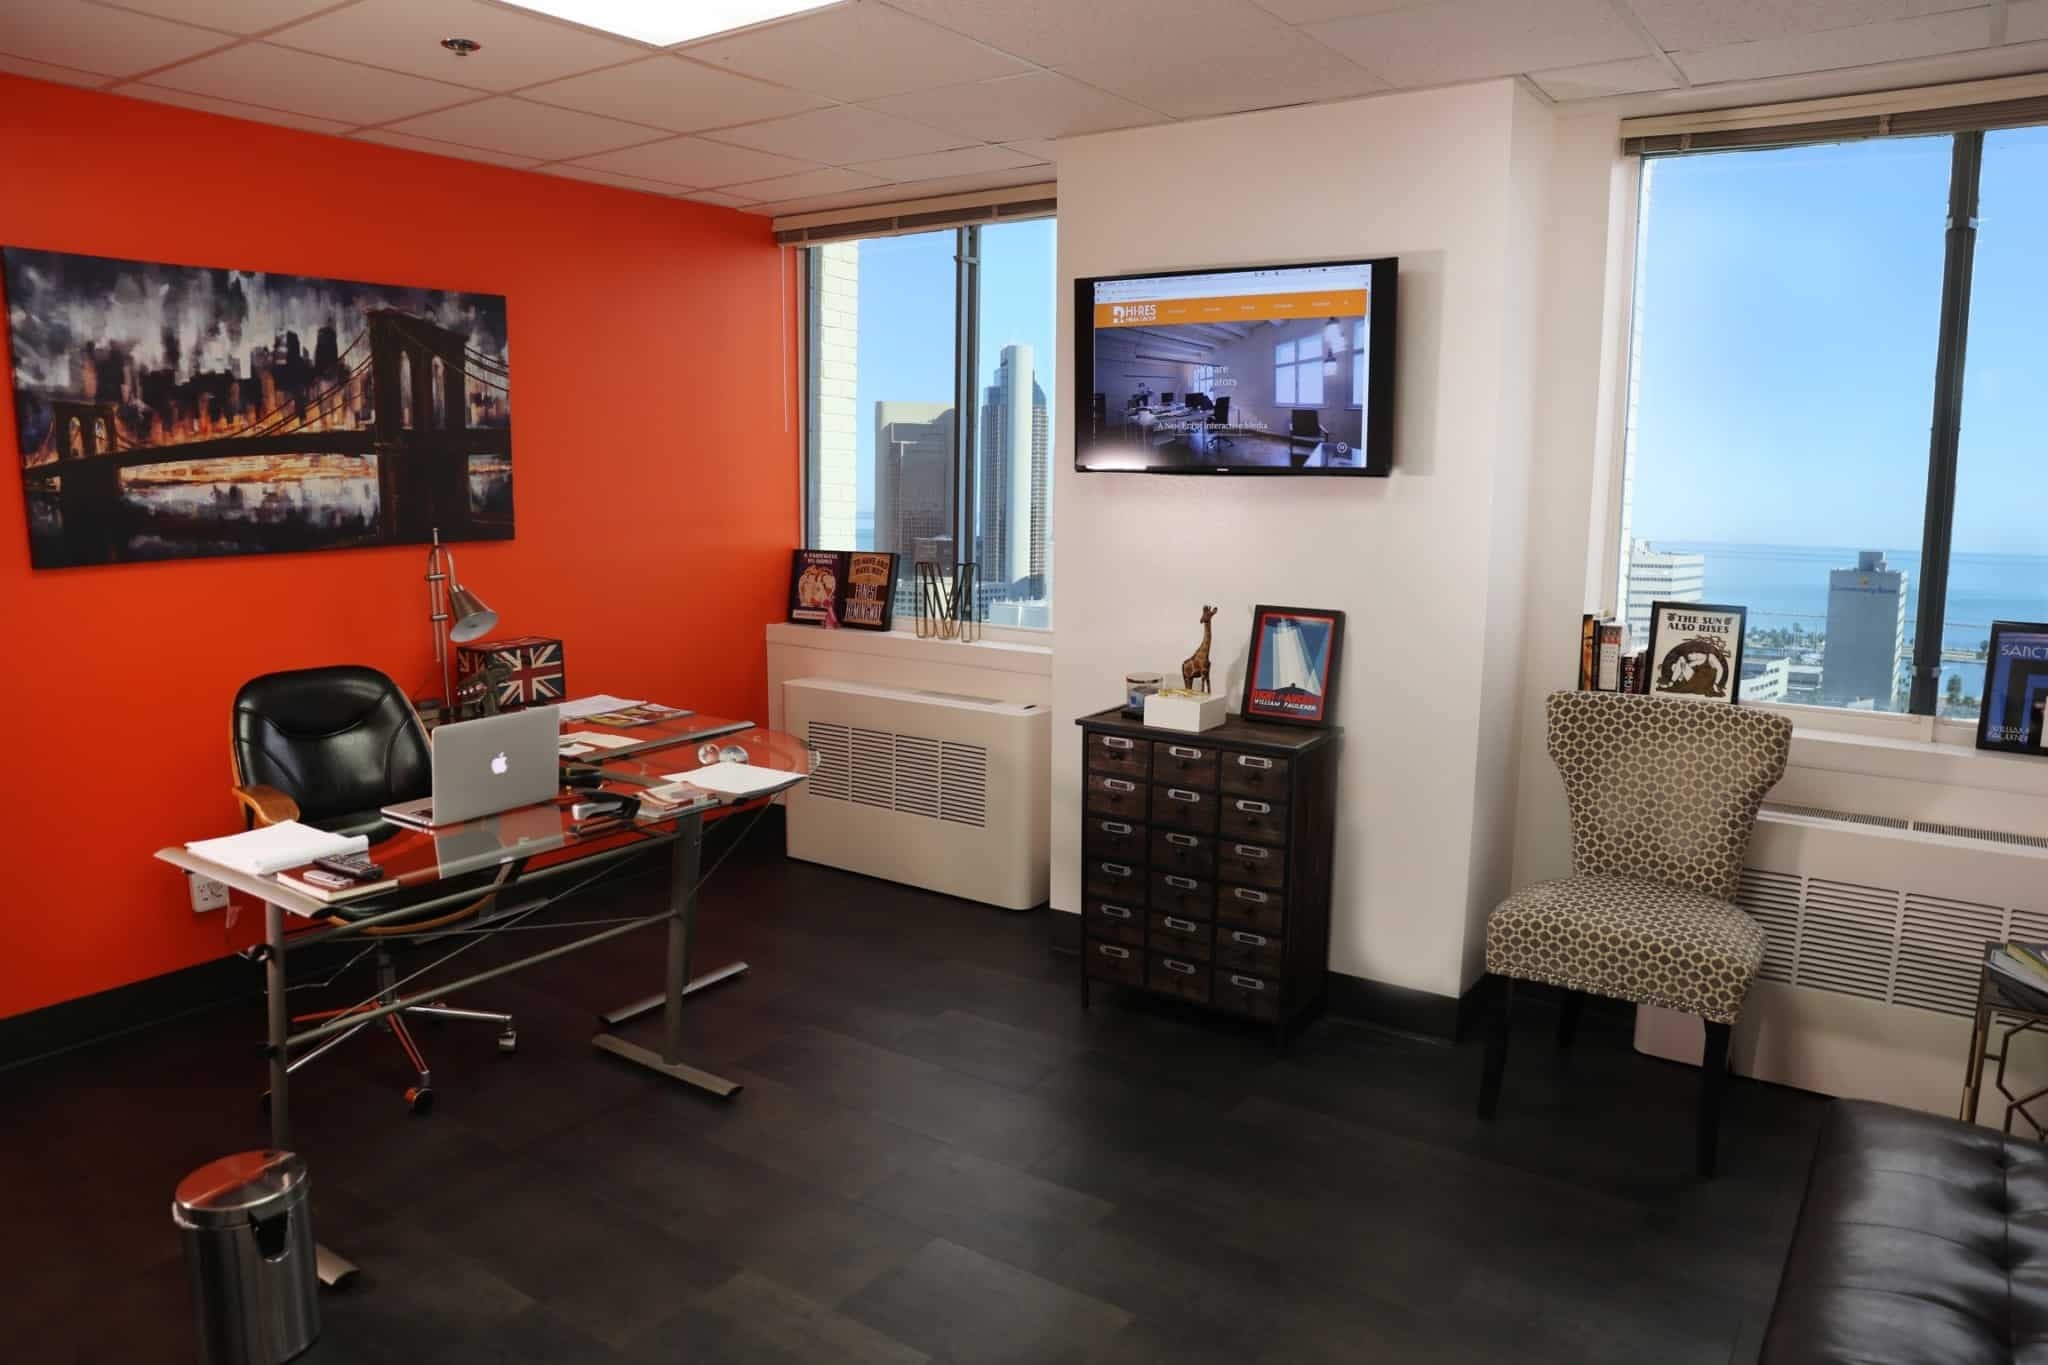 Marco Carbajal's Office